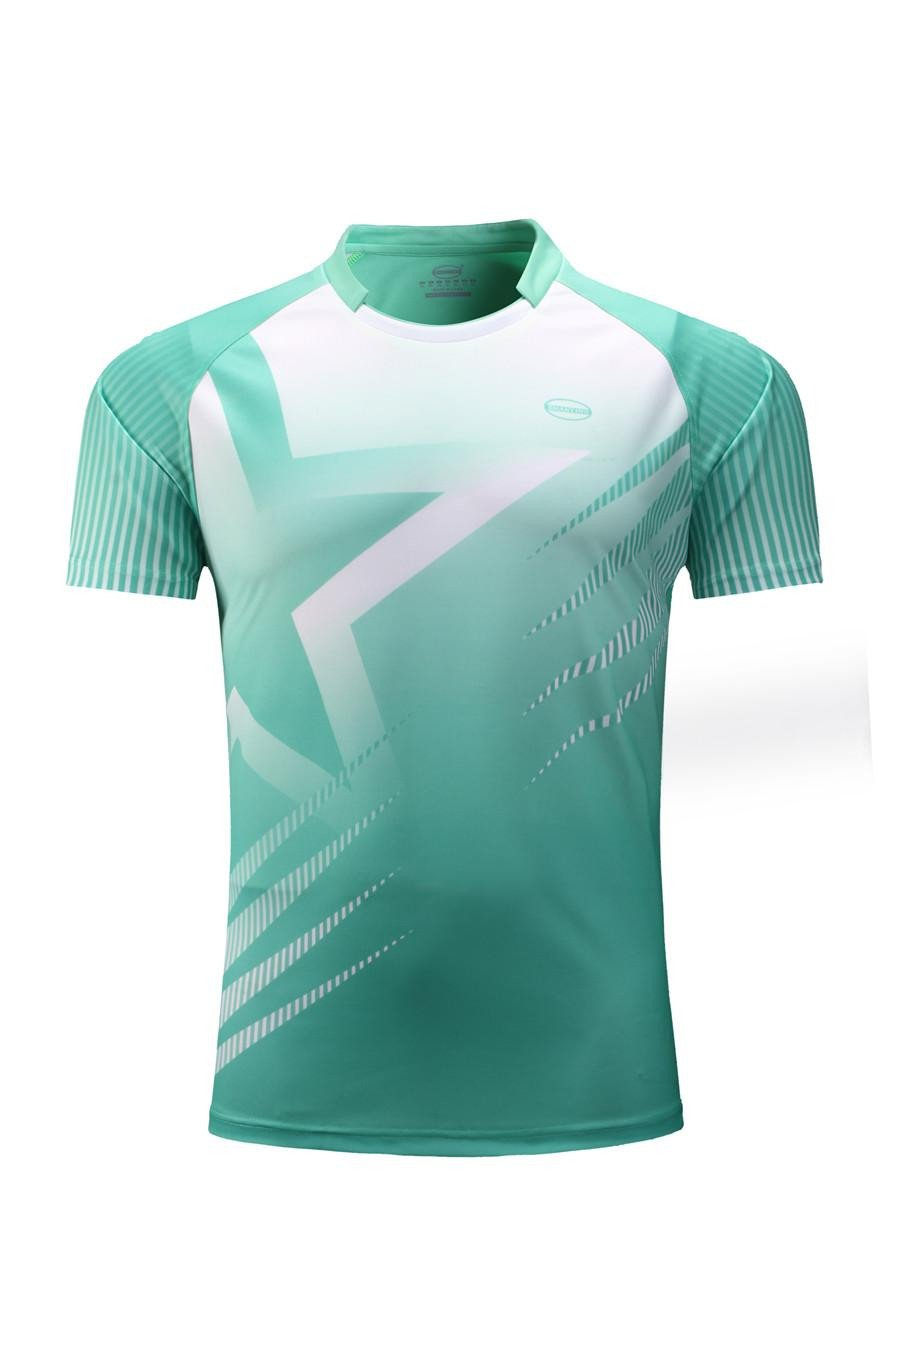 Men Golf Shirts Training Short Sleeve T Shirt Golf Shirts Sports Jersey Design Badminton T Shirts